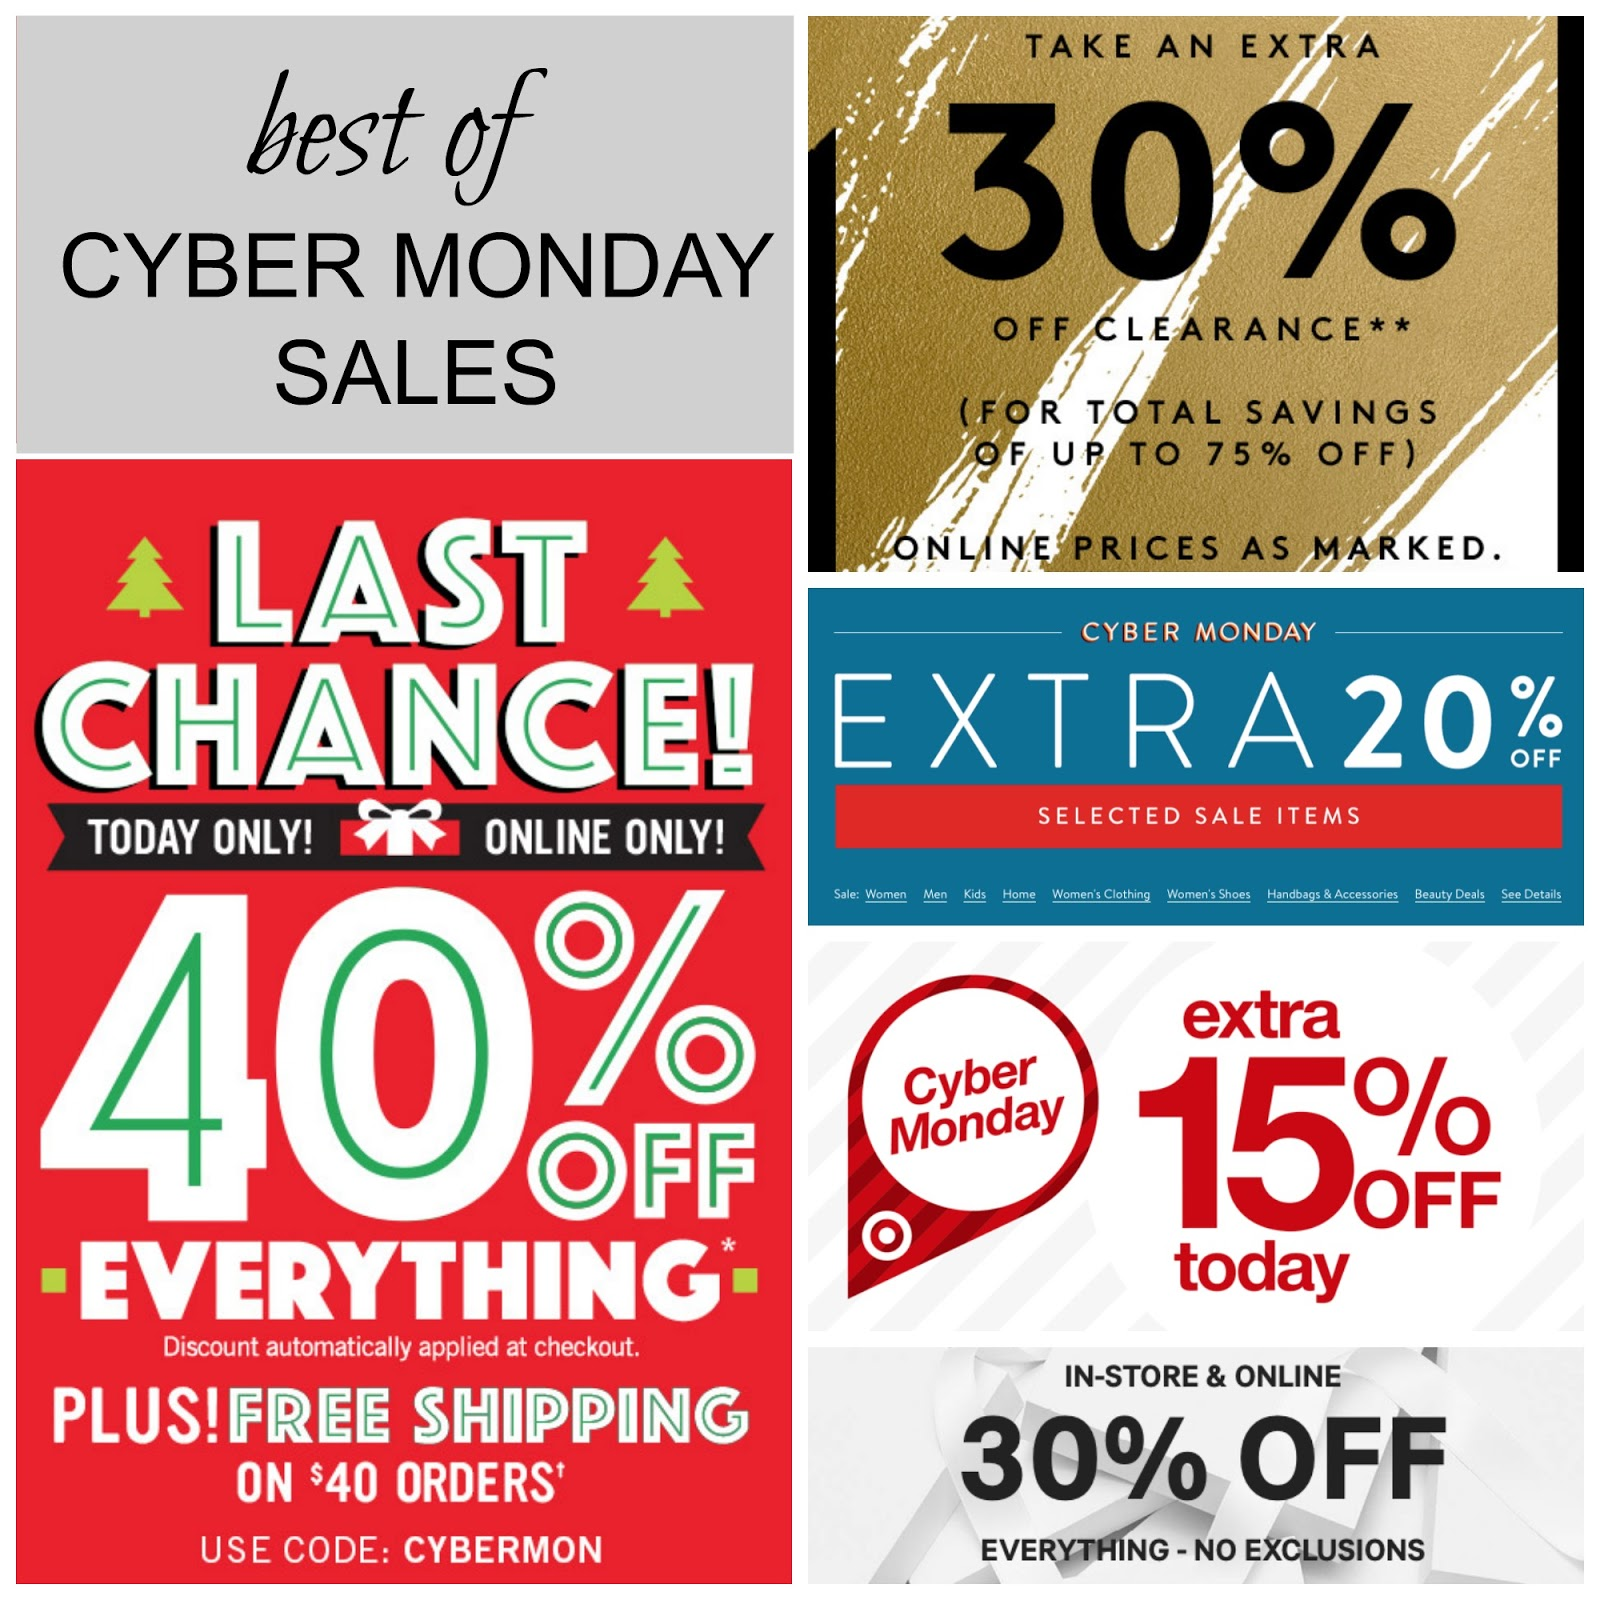 Tracy S Notebook Of Style Best Of Cyber Monday Deals Extra 50 Off Free Shipping Deals